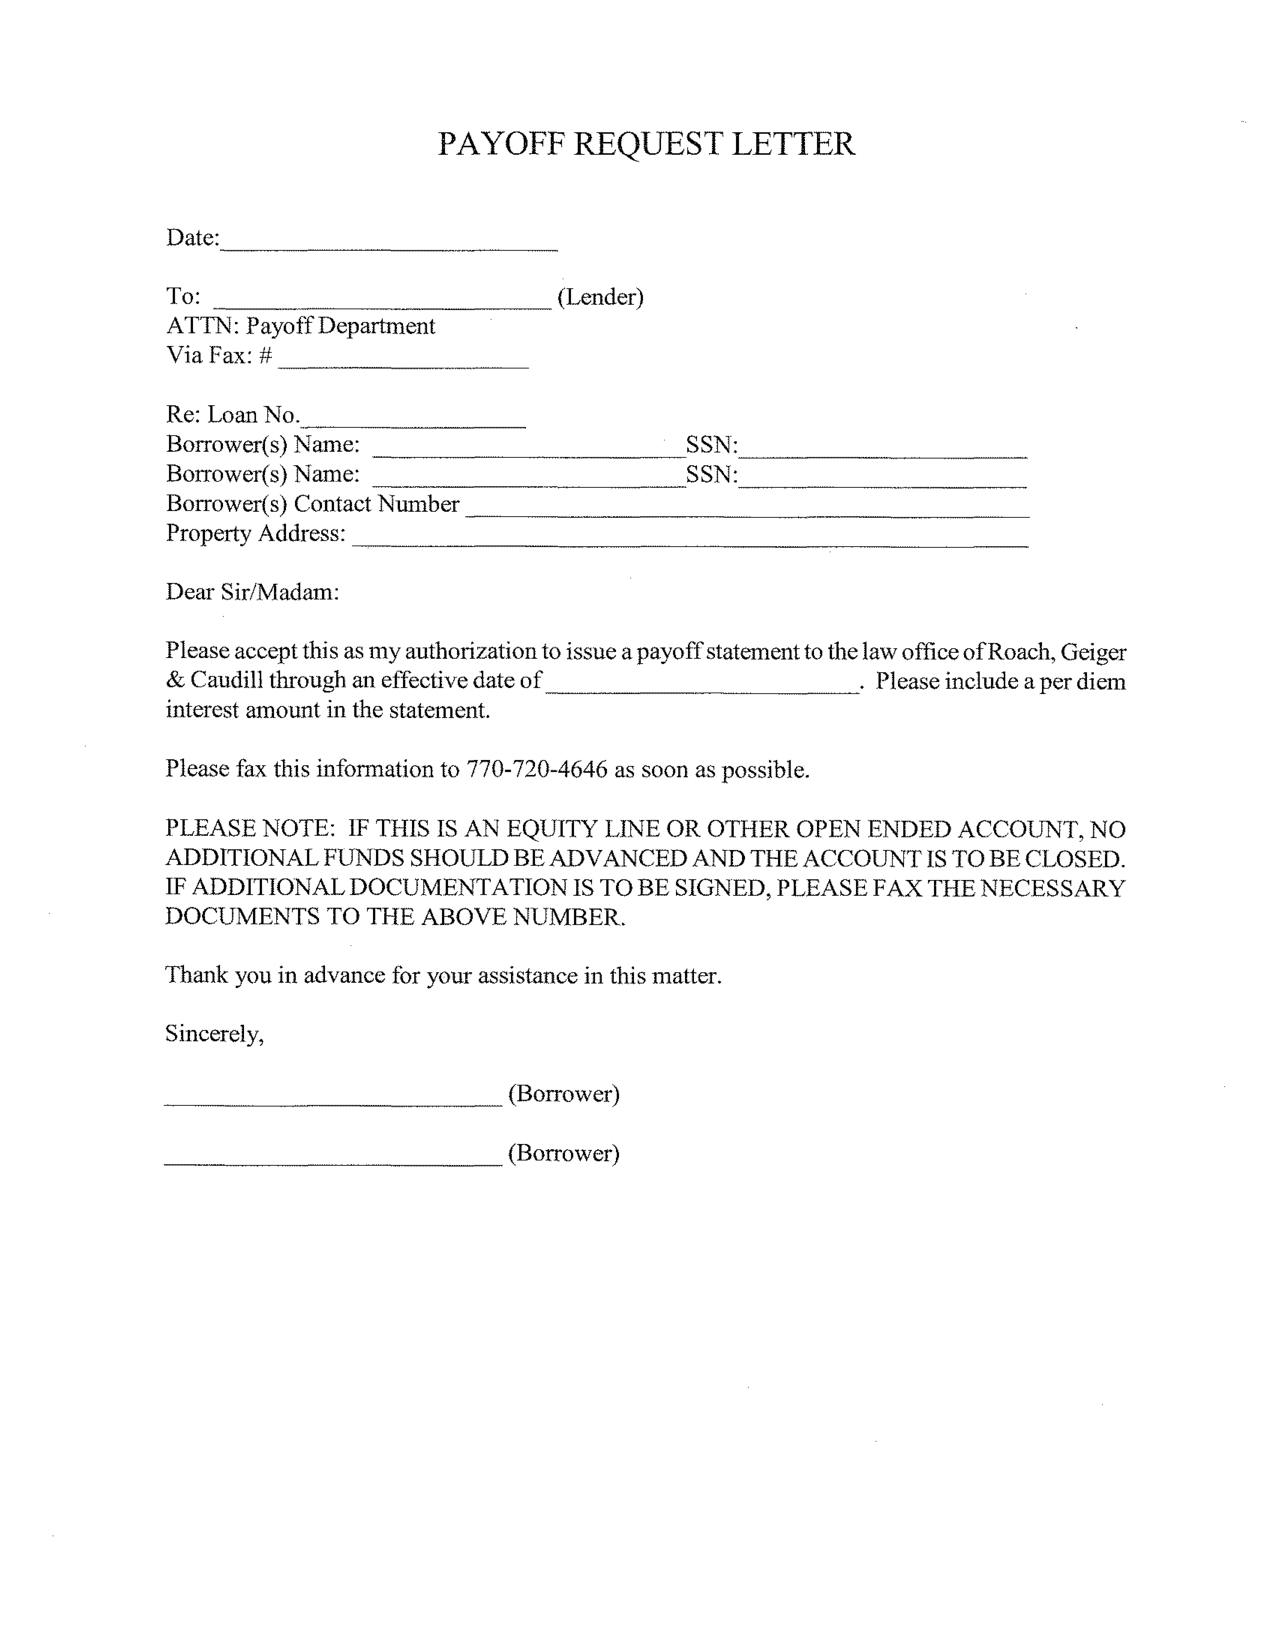 Statement Request Letter - Example Letter Requesting A Statement Of